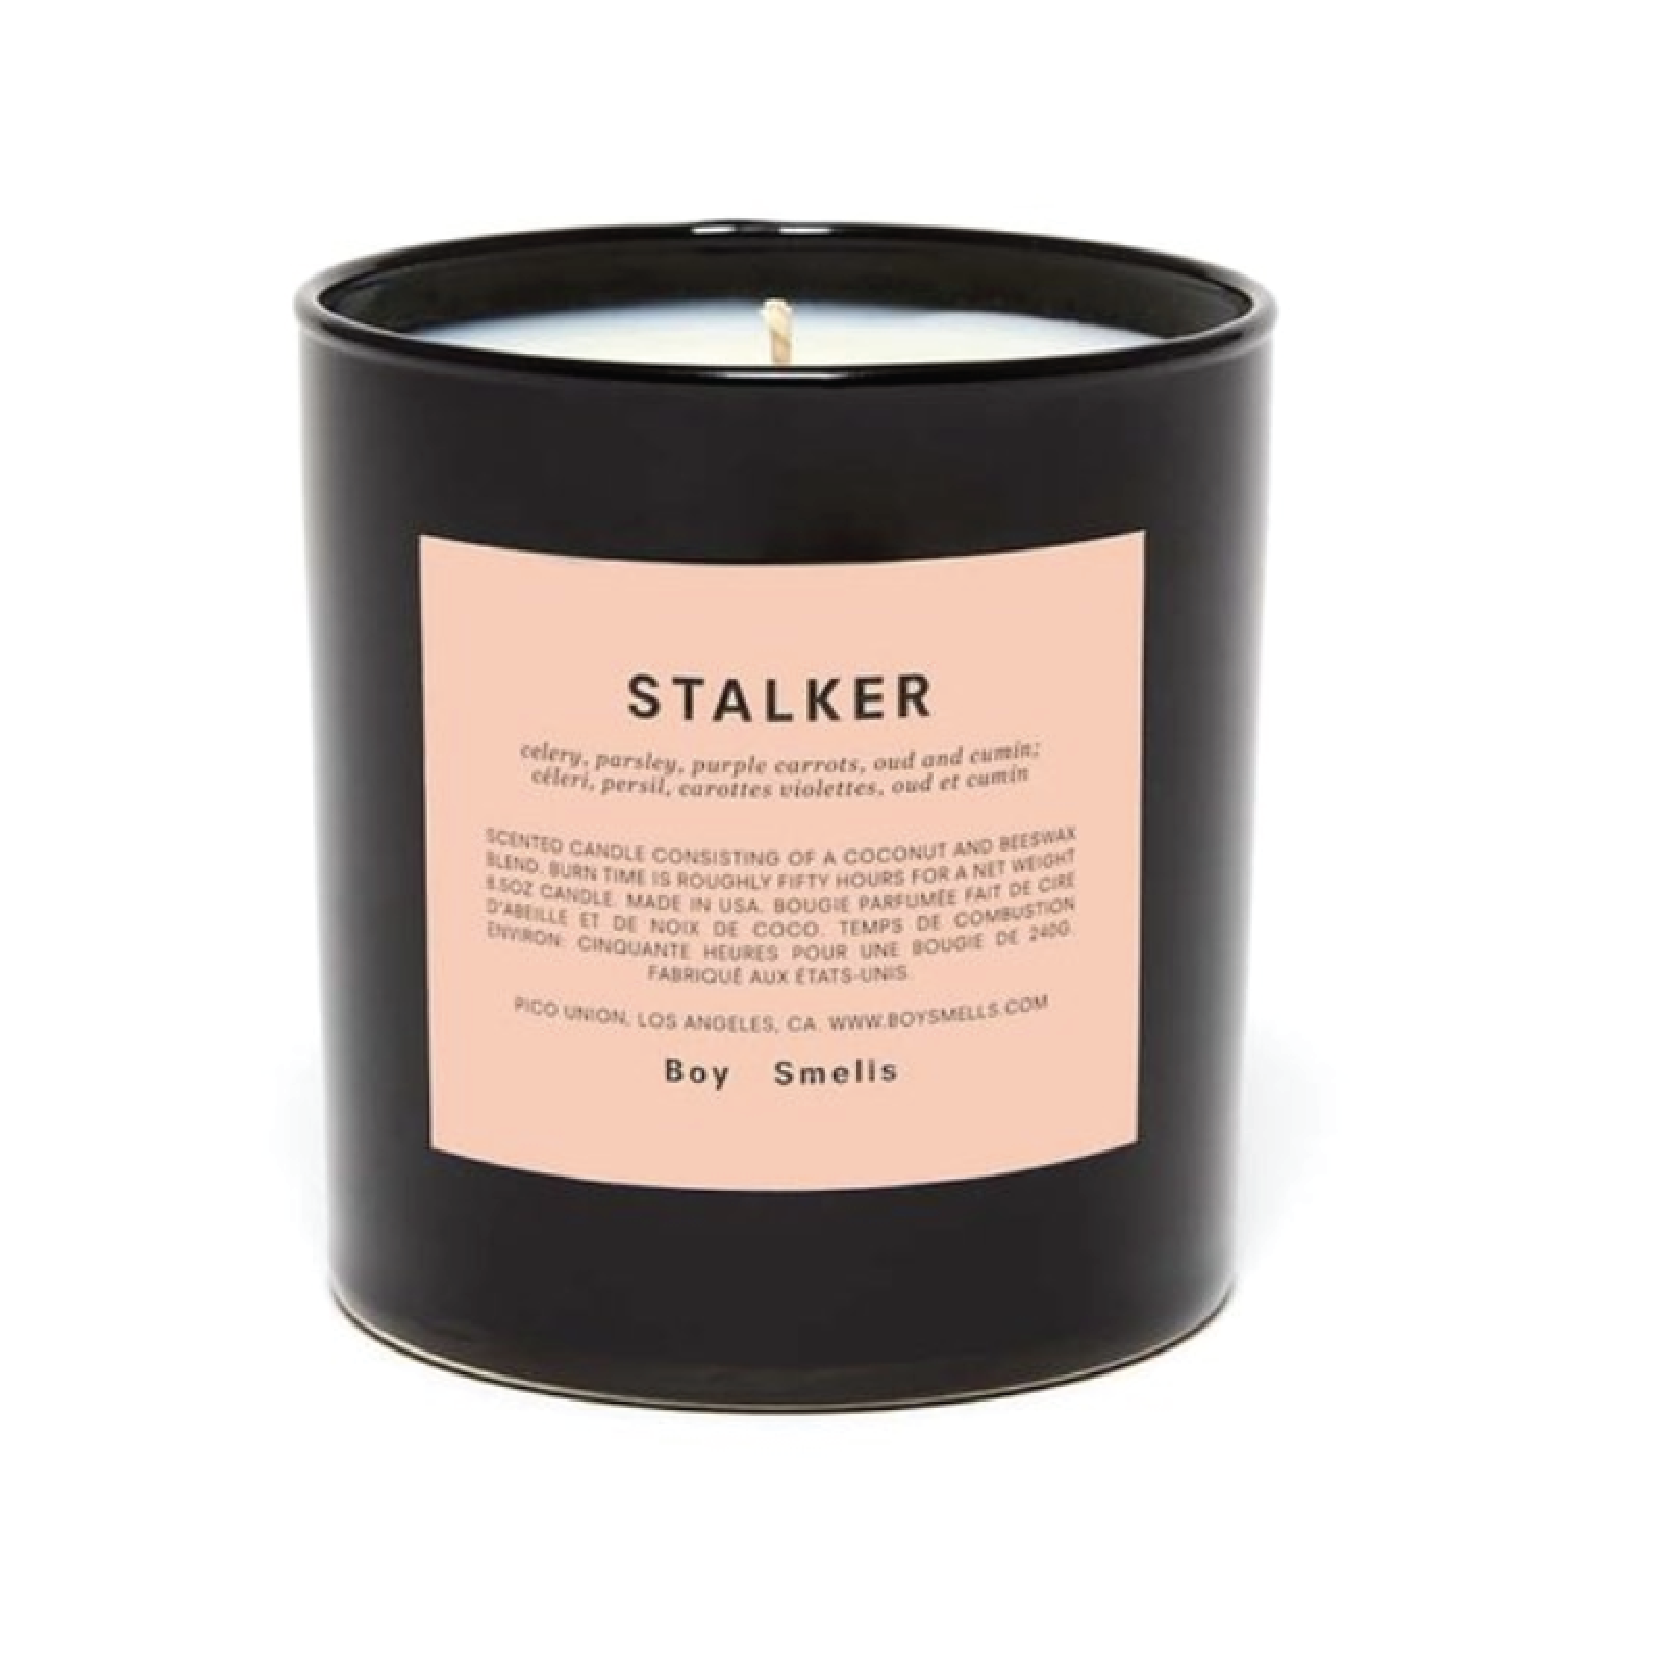 Boy Smells Stalker Candle - $32 at Ban.doThe best gag gift - or serious one depending on your style - for that special someone.